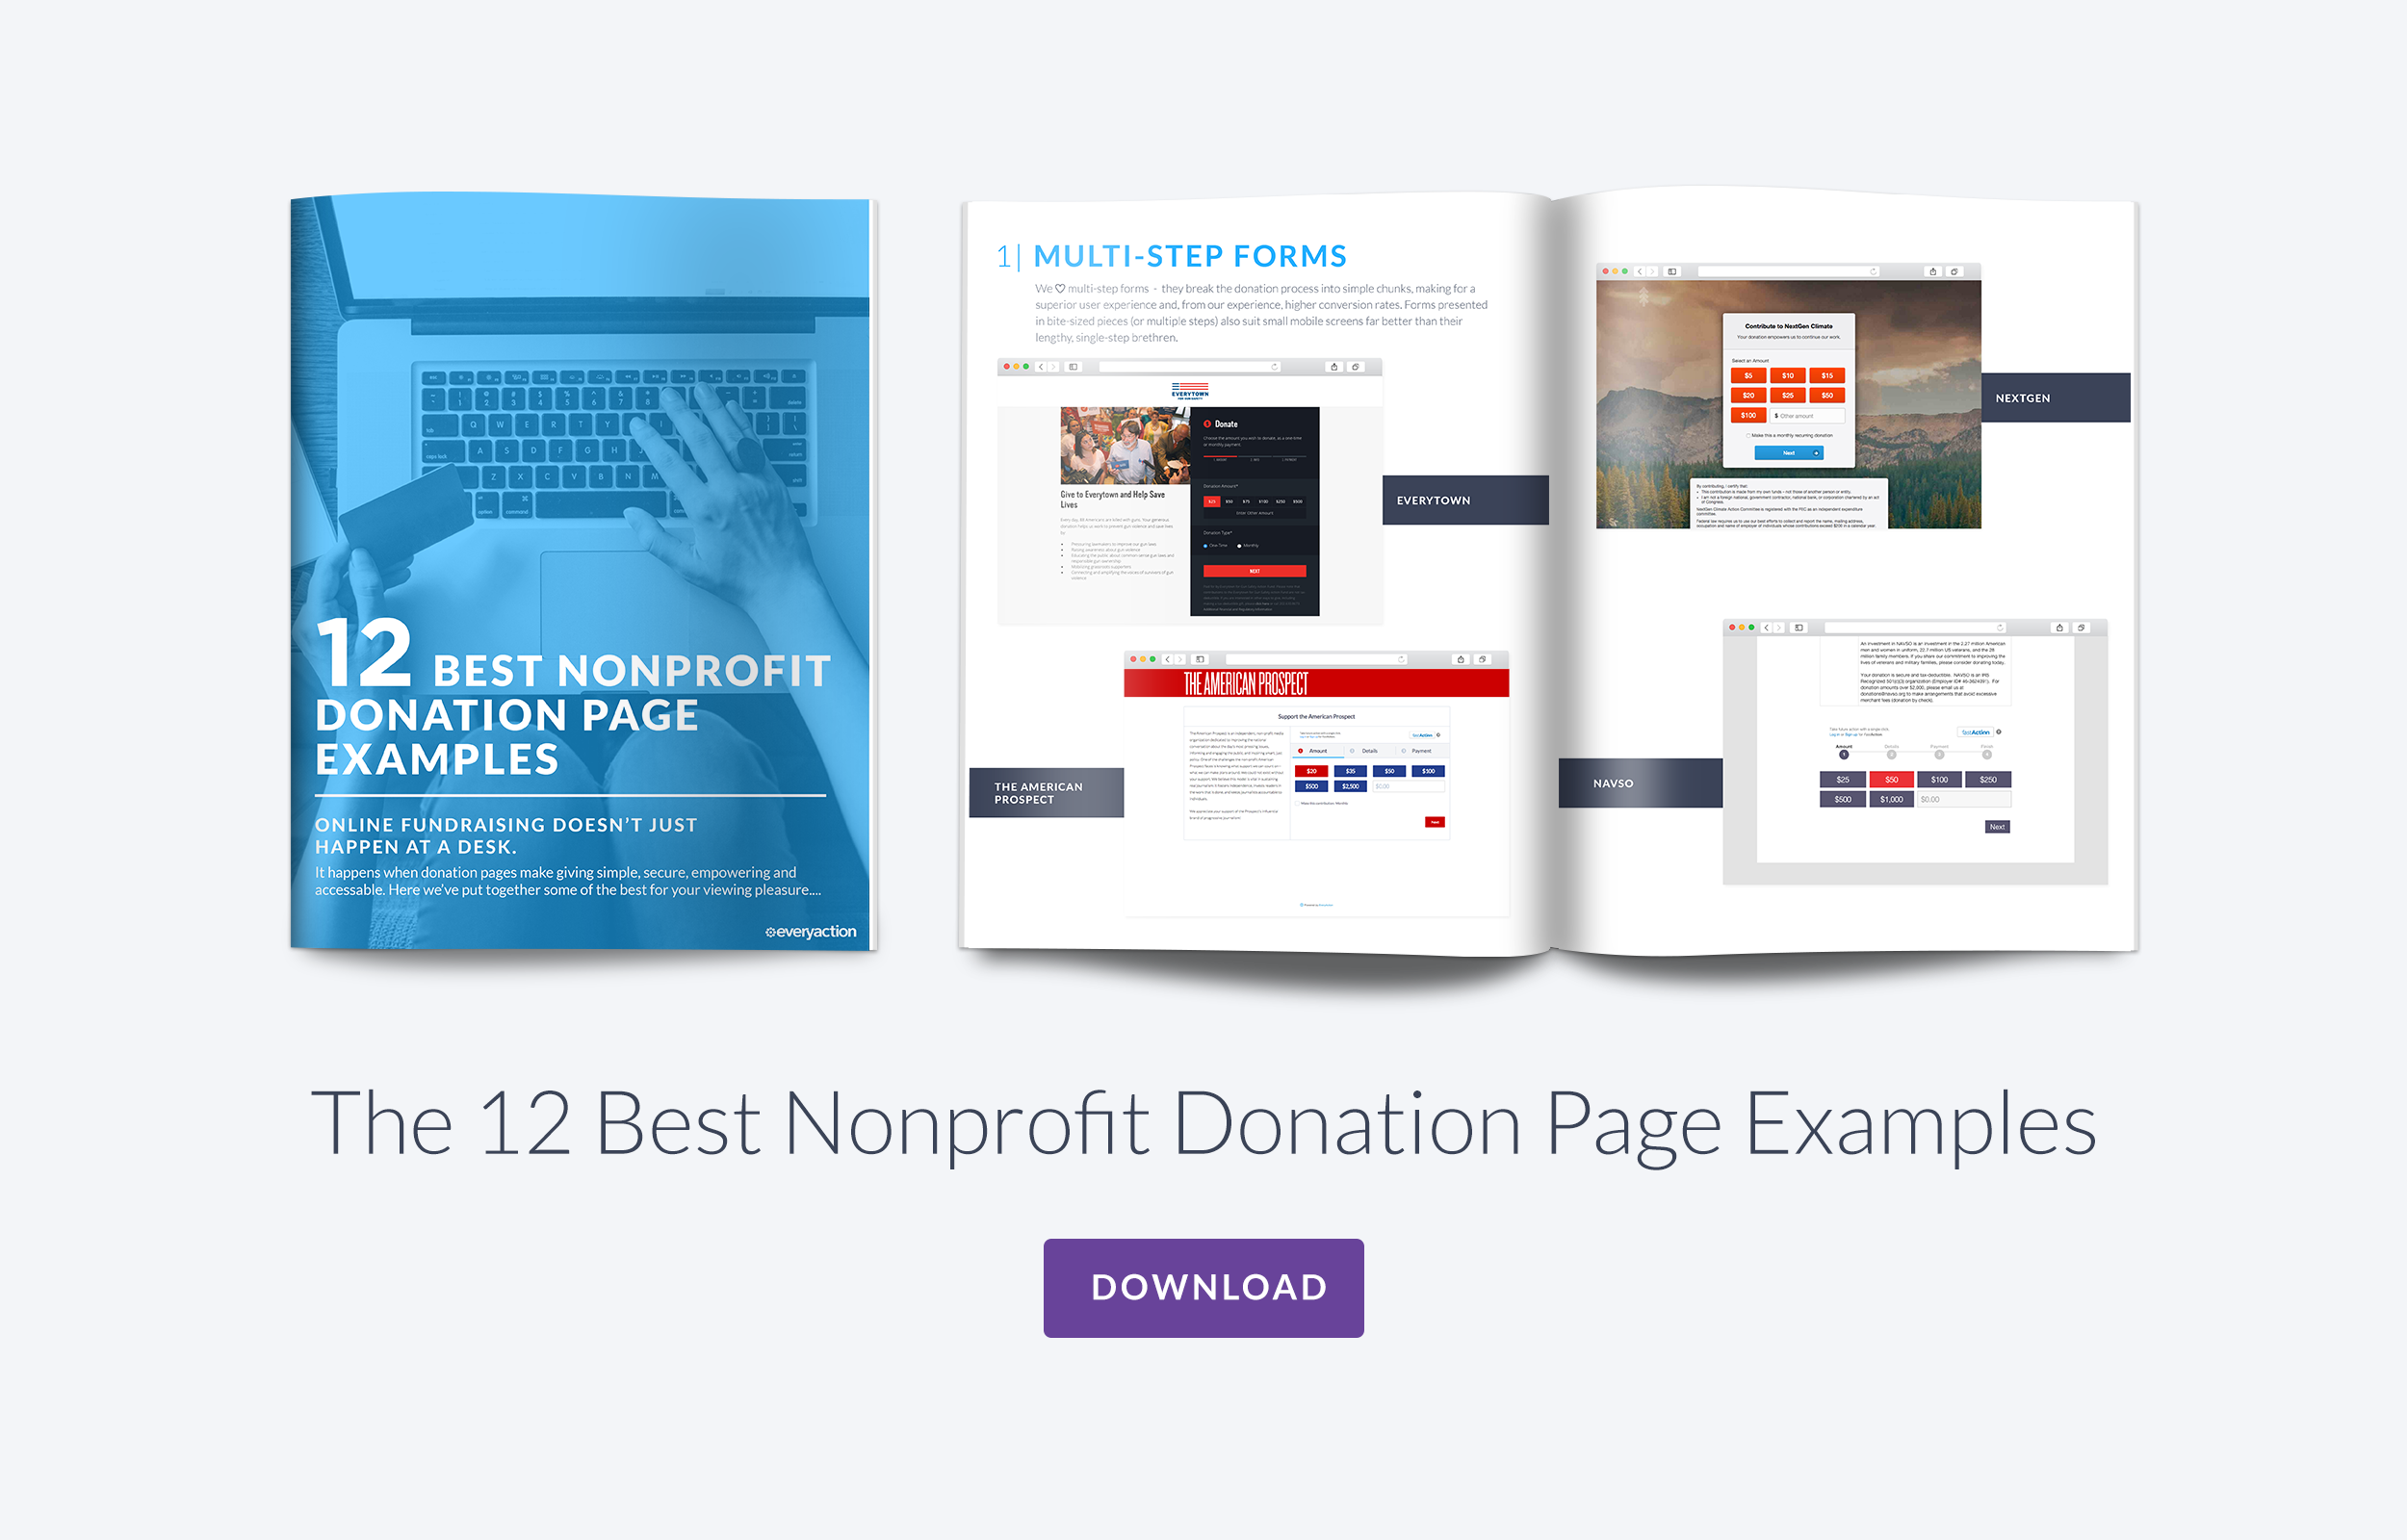 12 Best Nonprofit Donation Page Examples